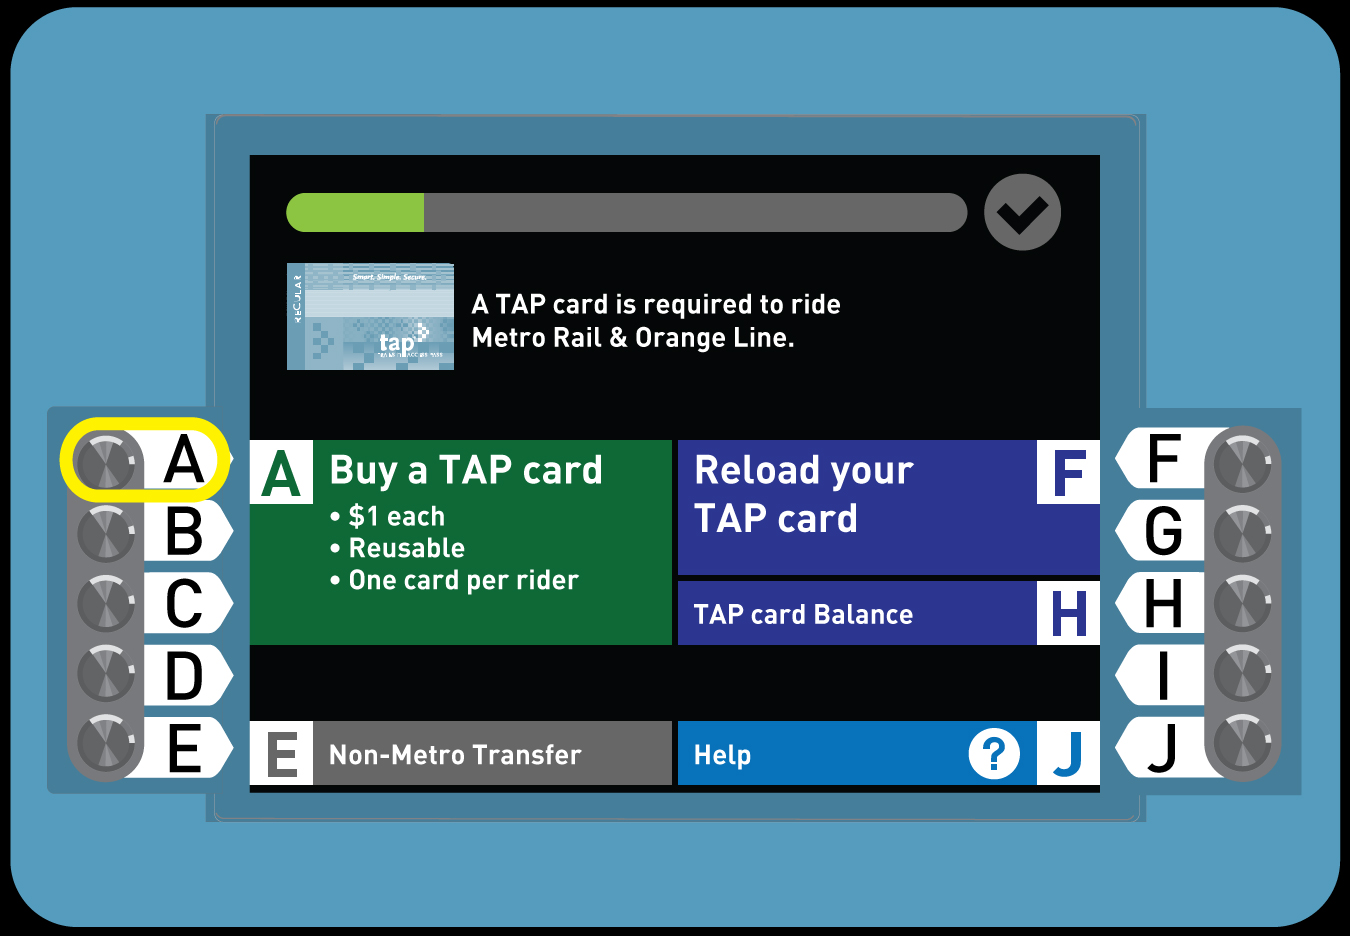 Buy a Regular TAP card with a Day Pass